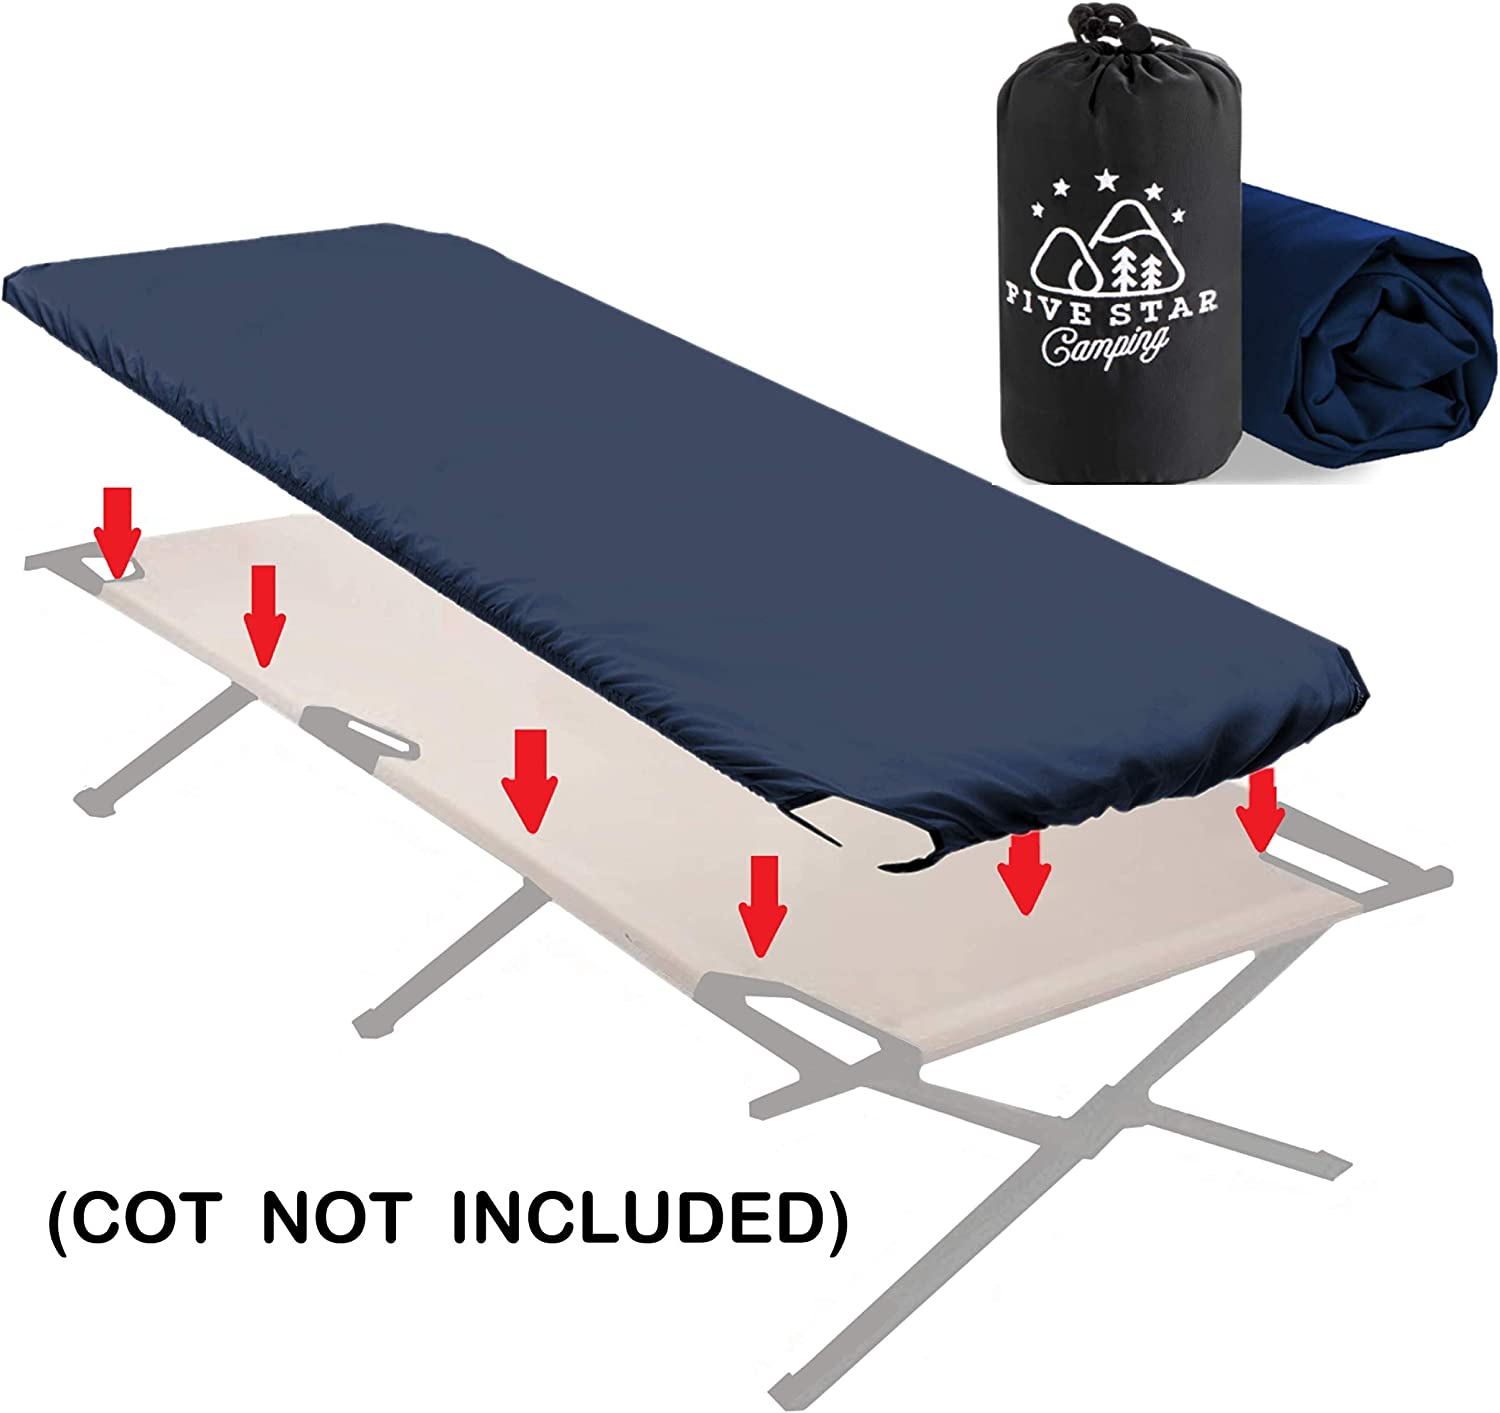 Camping Bedding That fits Most Army cots Military cots Great for Hunting Travel cots and Folding Cots Keeps Your Sleeping Pad Secure! Fitted Camping Cot Sheet for Adult Sleeping Cots